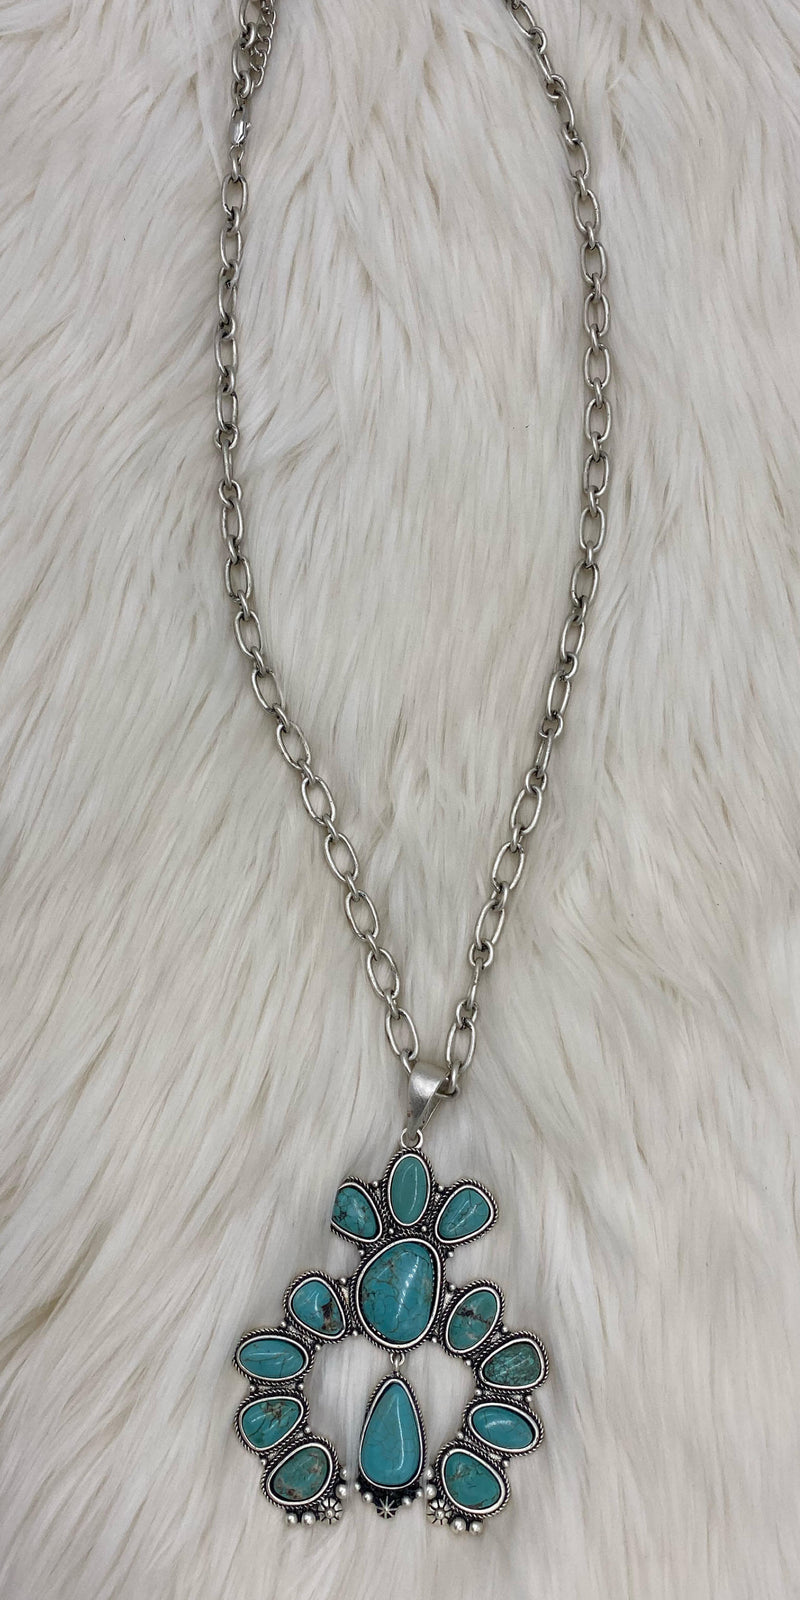 Bracee Turquoise Squash Blossom Necklace